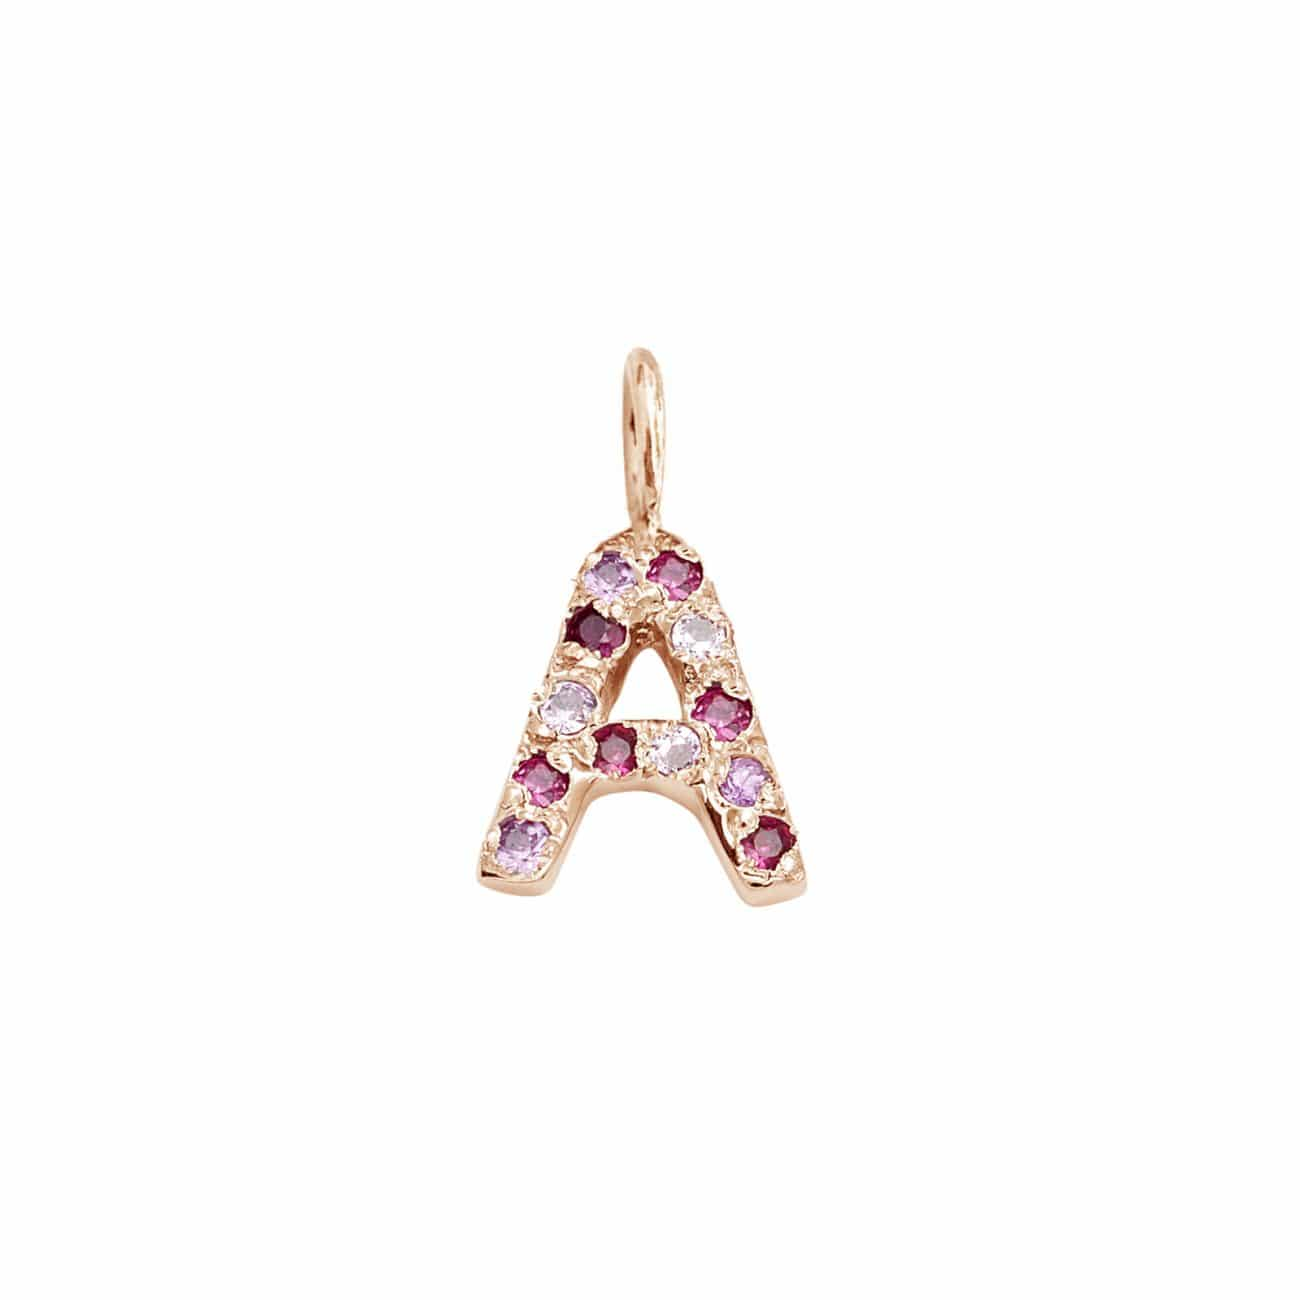 Letter Charm Pendant with Pink Hue Gems in 14k Pink Gold